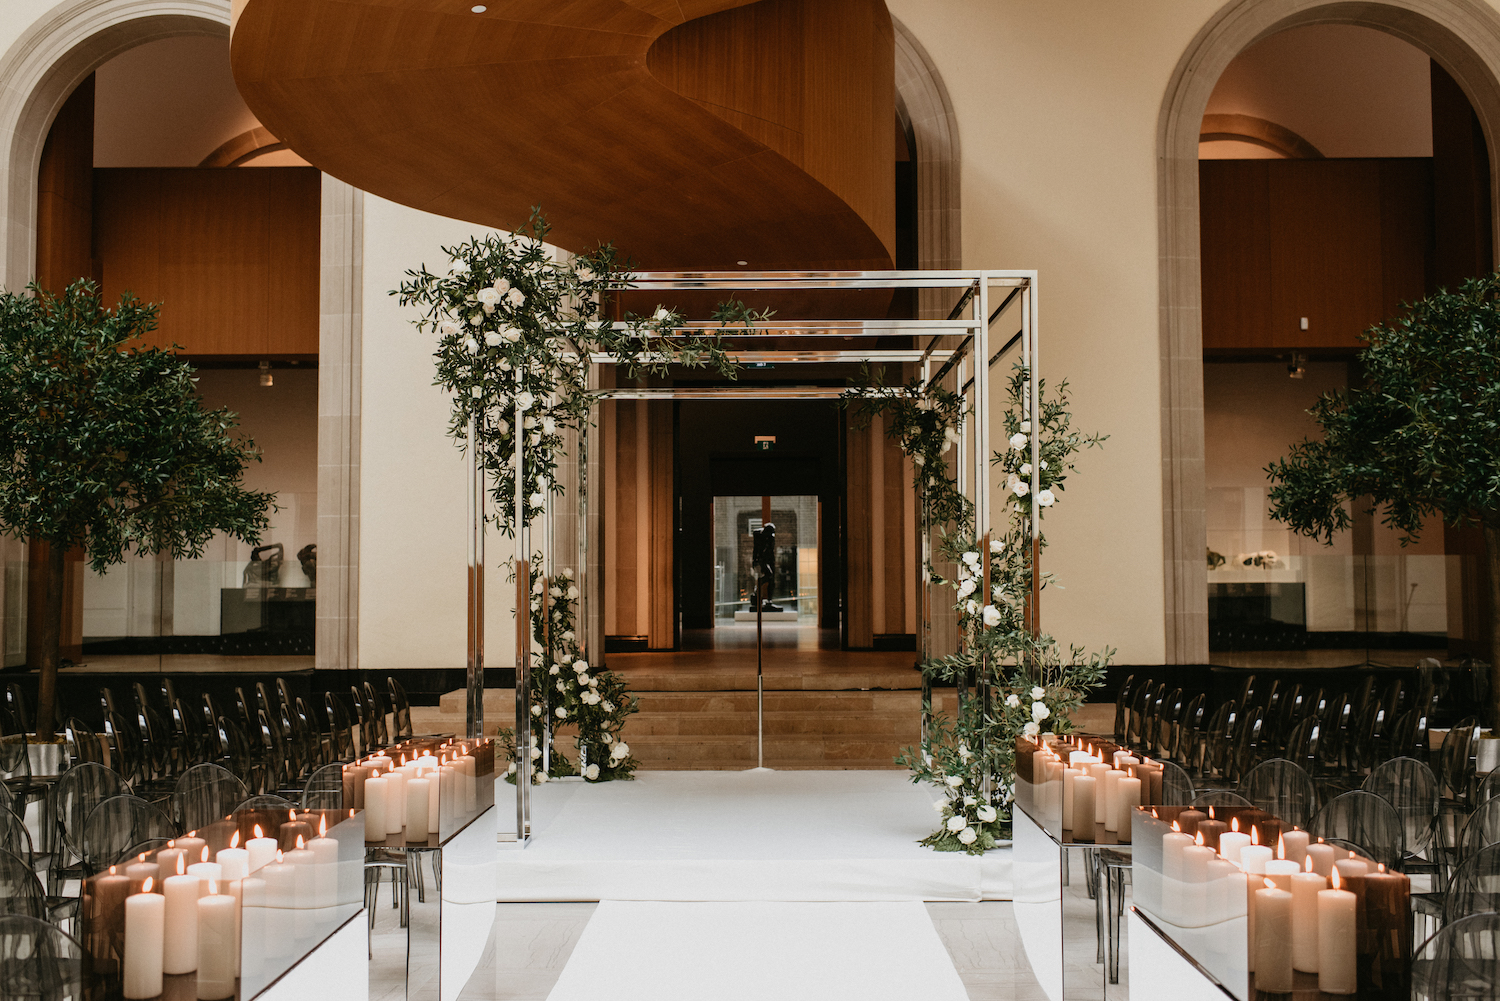 art gallery ontario wedding decor